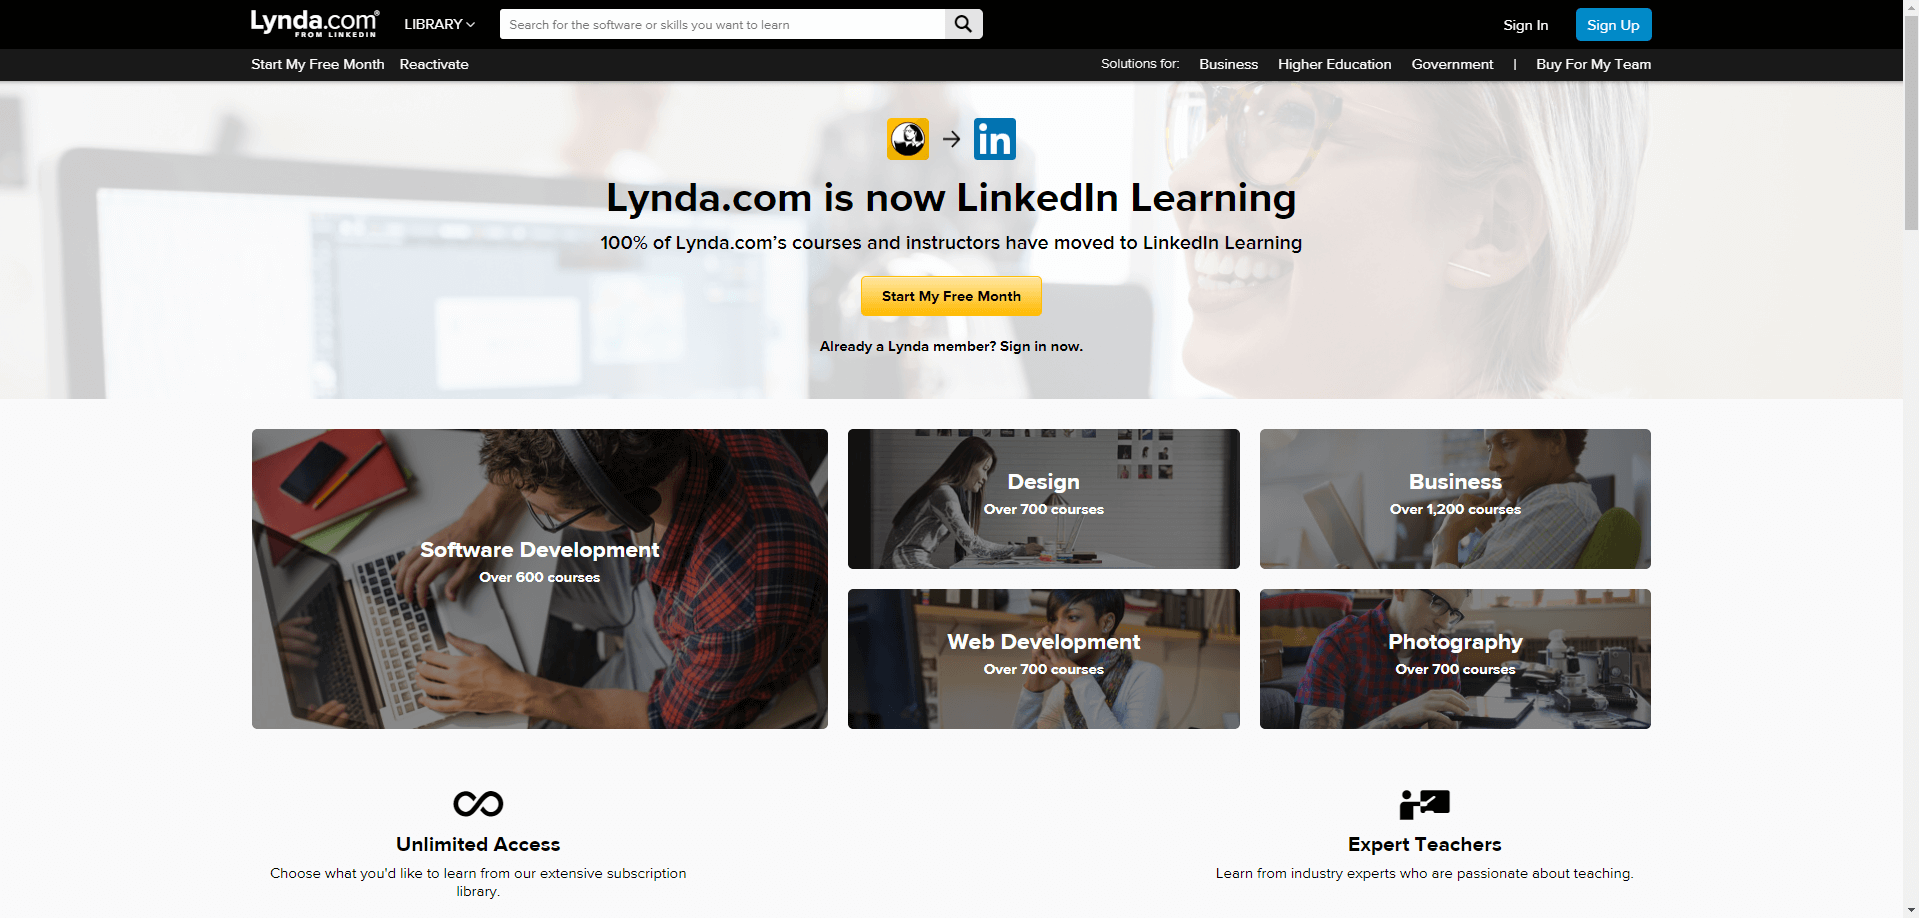 how to get Lynda for free